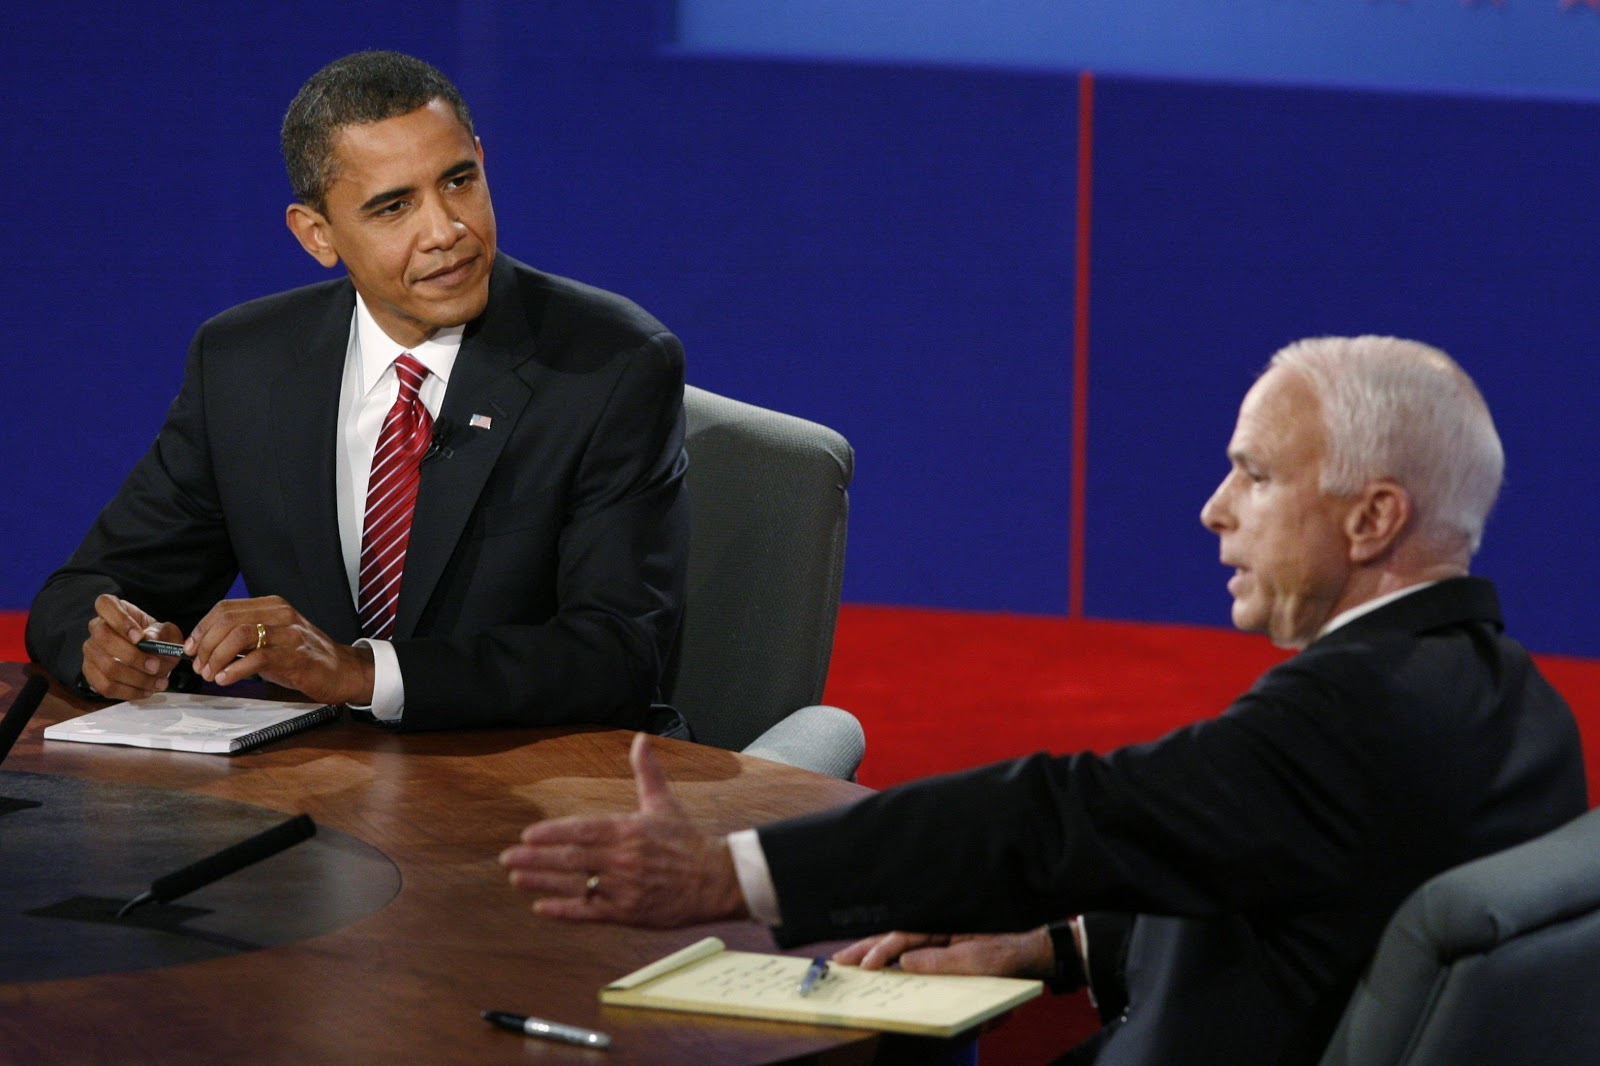 Barack Obama (D) vs. John McCain (R)